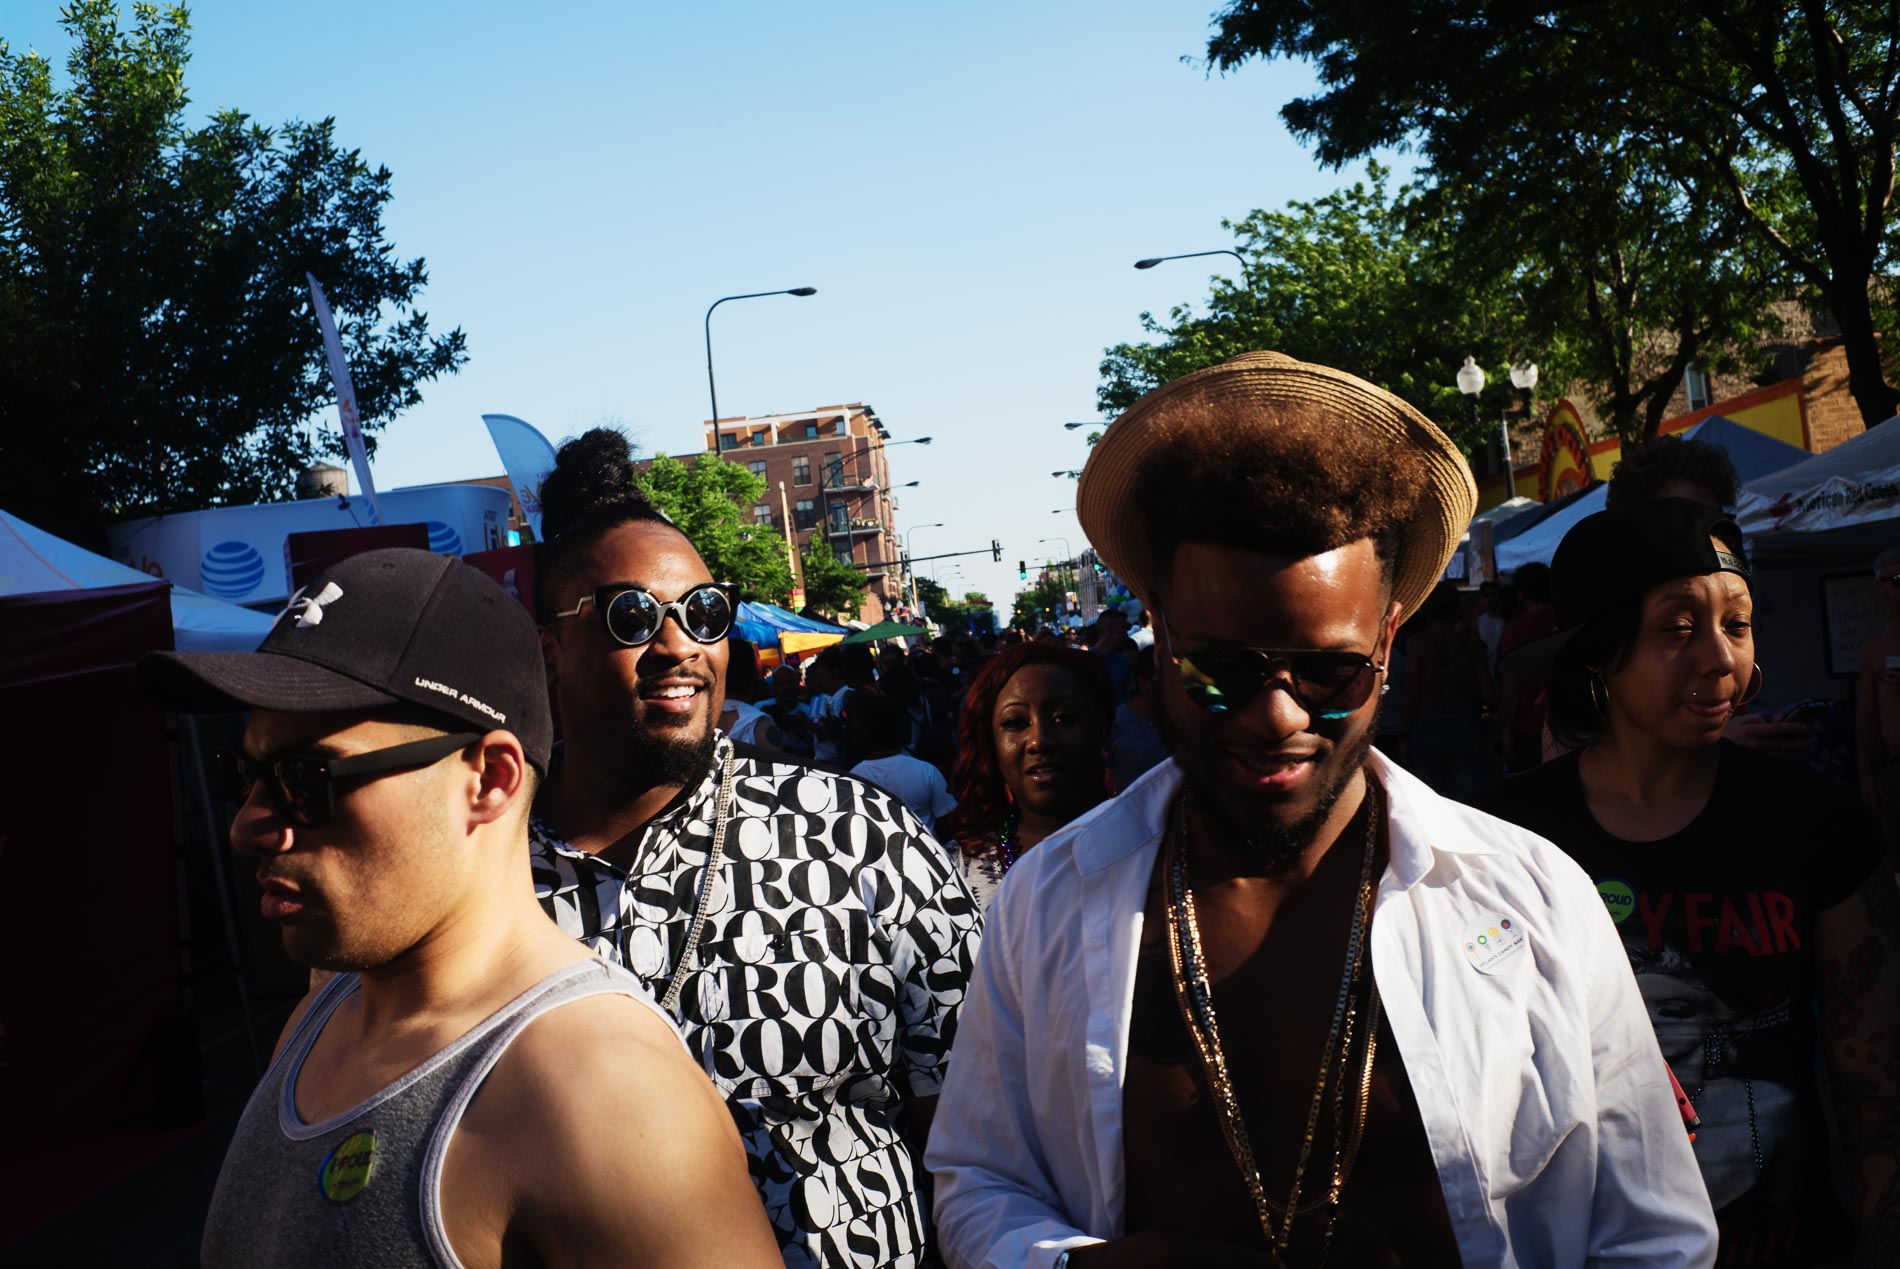 A group of revelers makes their way through the crowd.